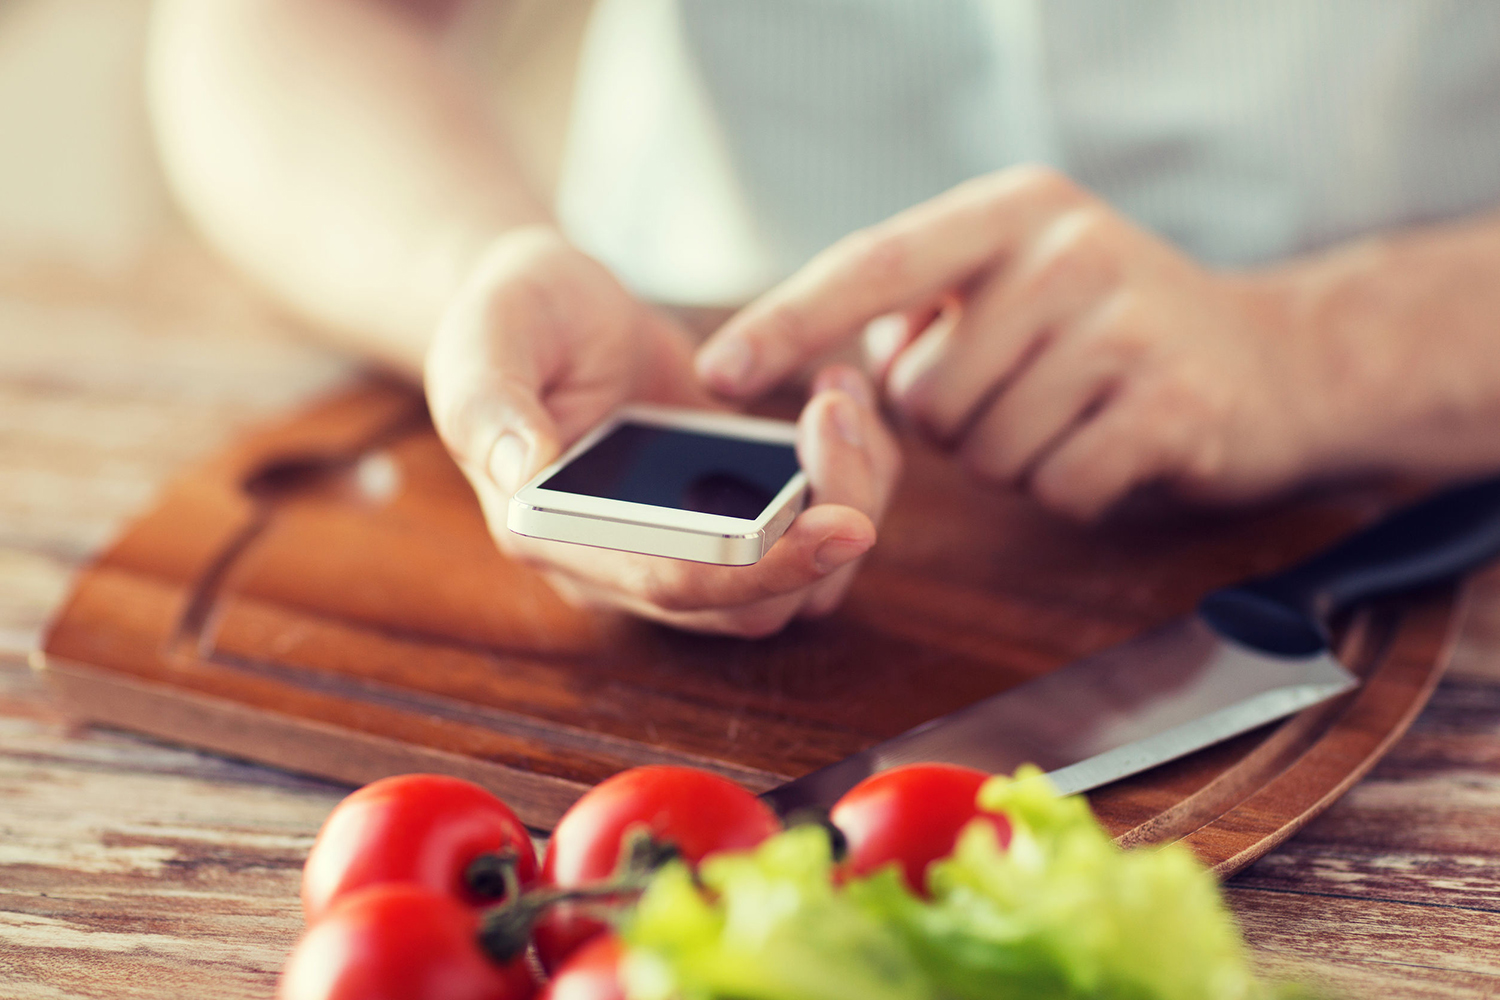 35287938 - cooking, technology and home concept - closeup of man pointing finger to smartphone